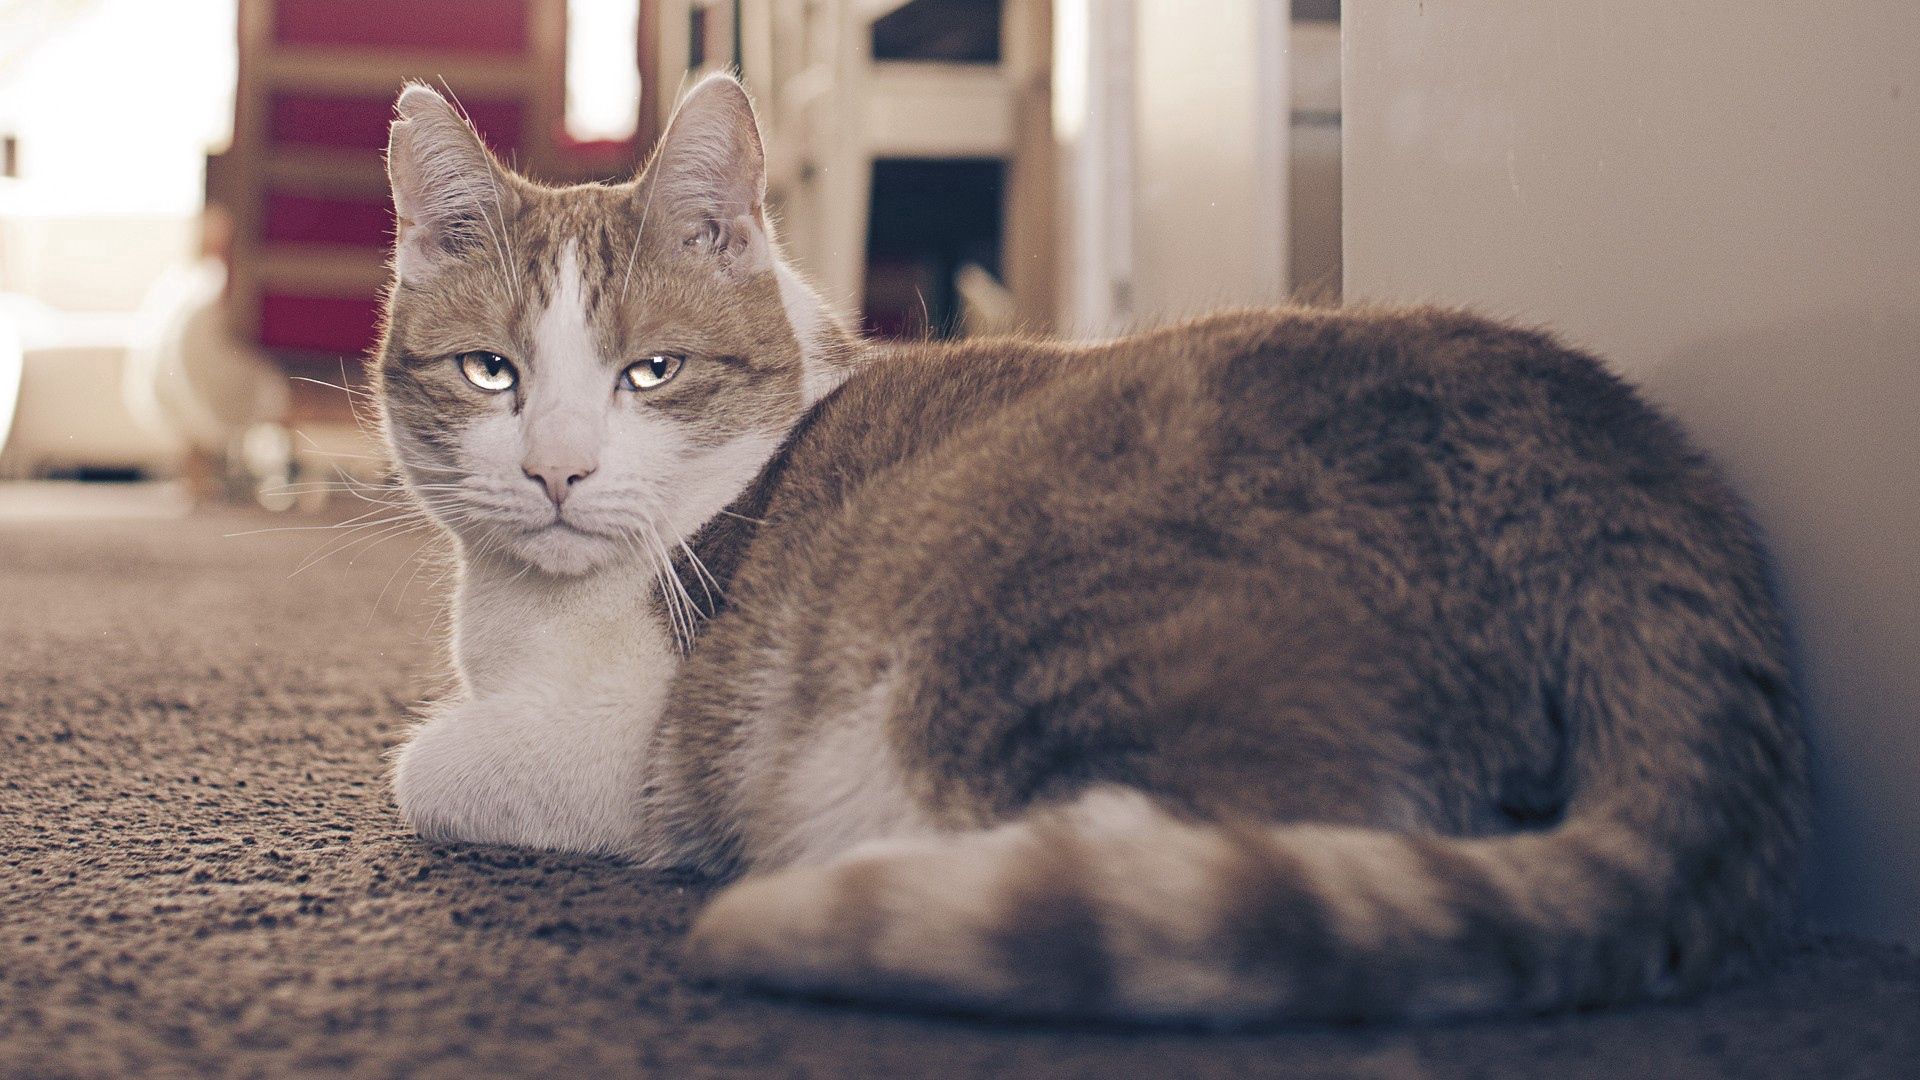 61249 download wallpaper Animals, Cat, Fat, Thick, Sight, Opinion, Tired screensavers and pictures for free